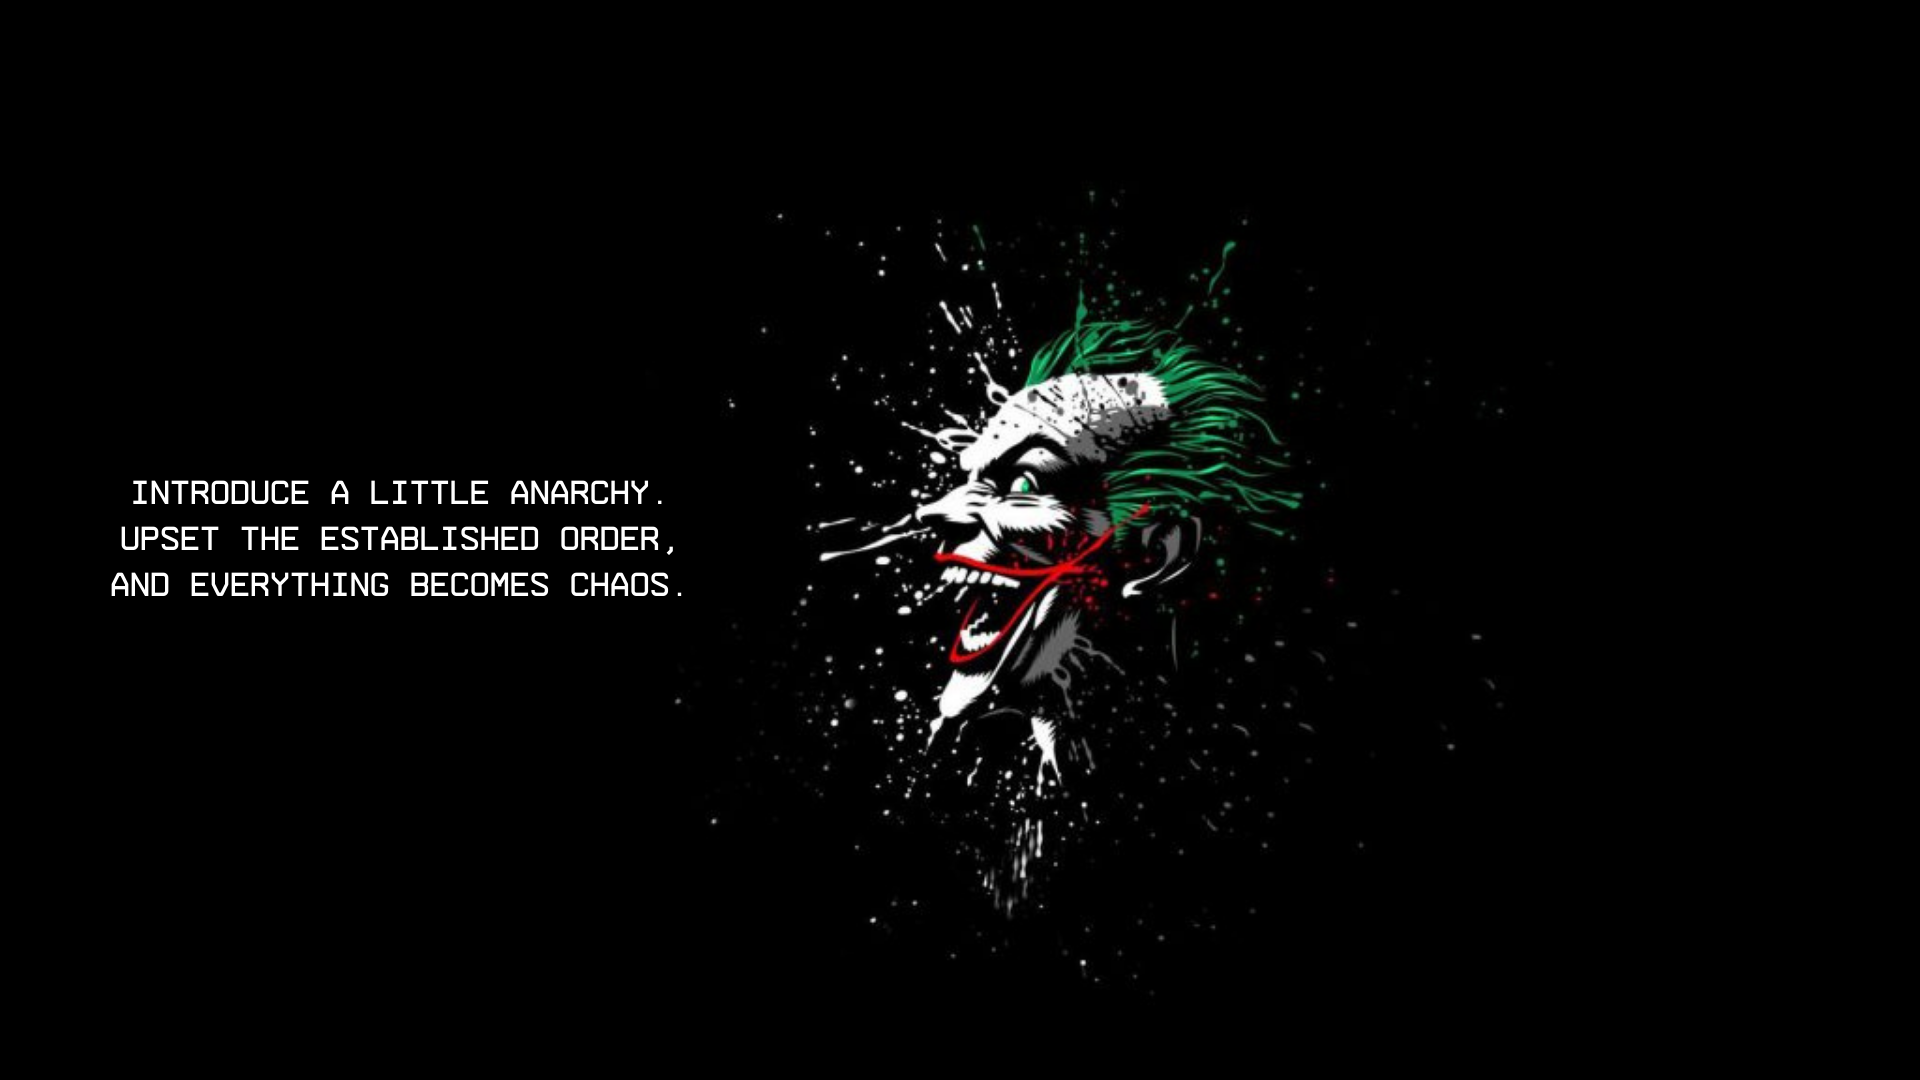 Wallpaper Quote Joker Movie Quotes Chaos Society Movie Quotes Wallpaper Quotes Real Quotes